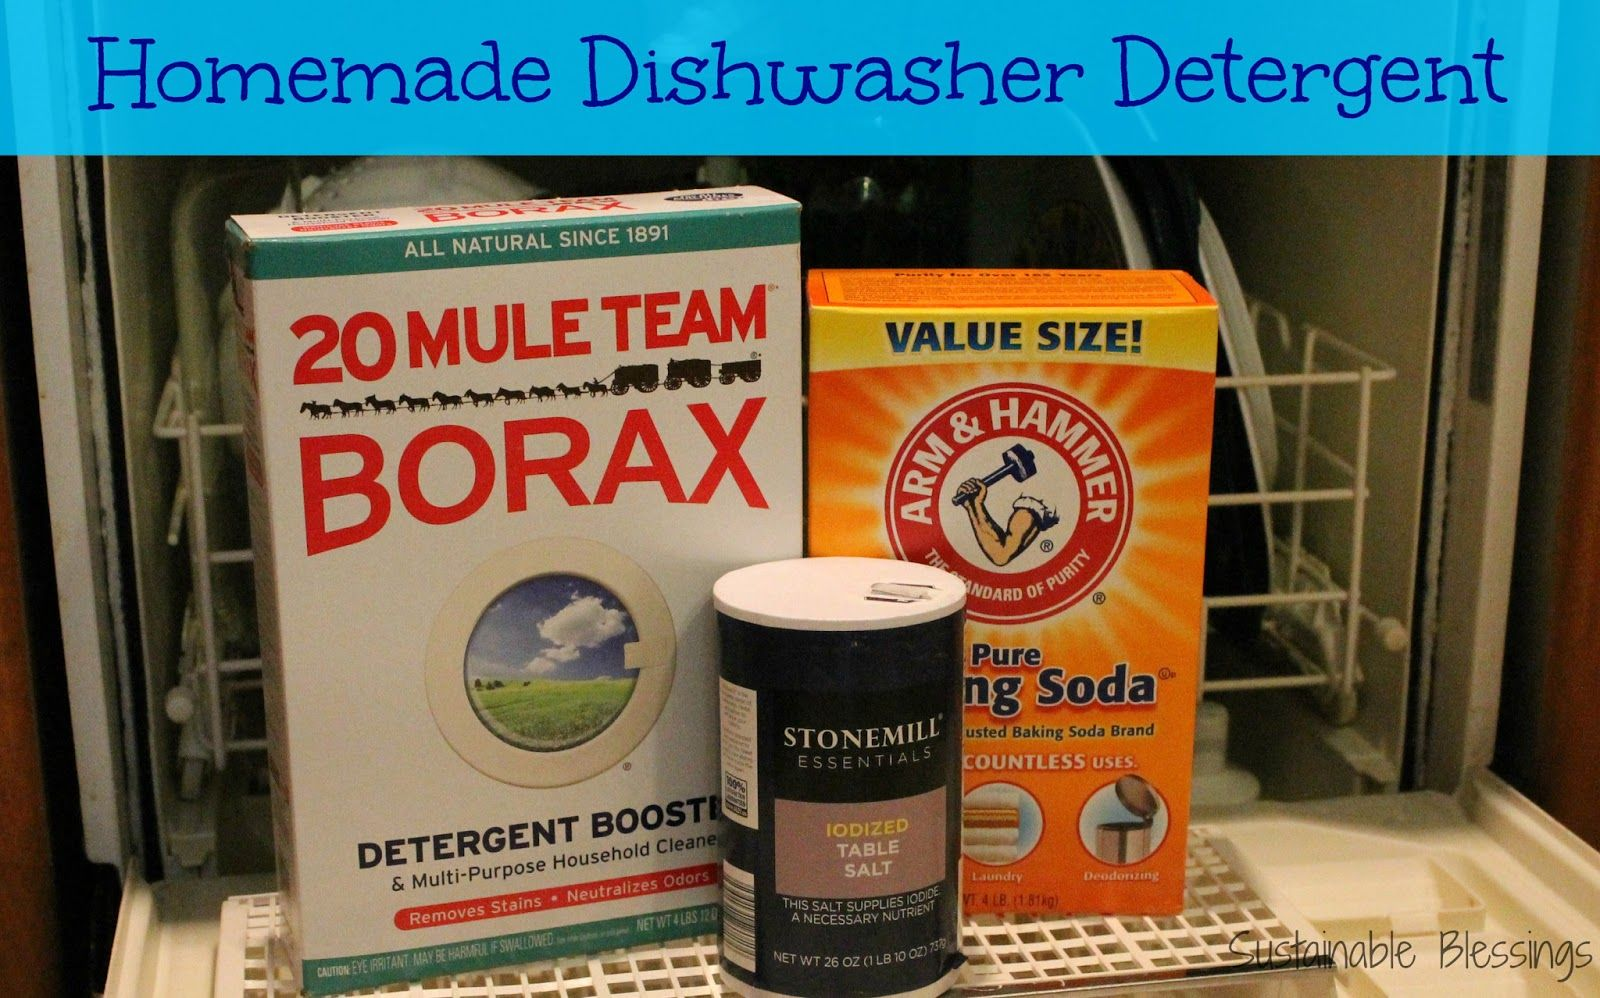 homemade dishwasher cleaner. Sustainable Blessings: Homemade Dishwasher Detergent \u0026 Rinse Aid | Clean Living - Whole Health Pinterest Detergent, Dishwashers And Cleaner